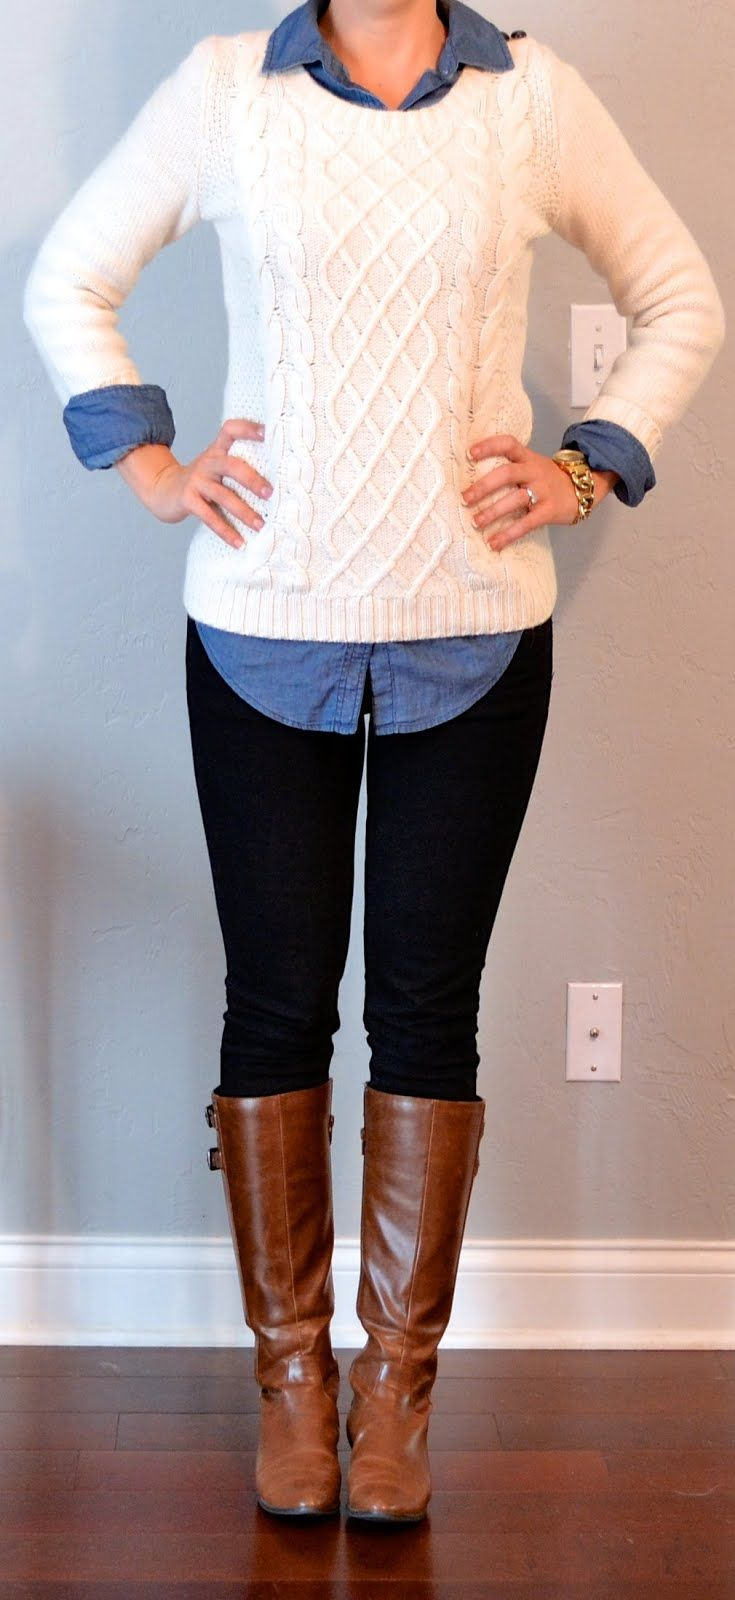 Ponte leggings are fabulous for work or casual daytime outfits, too! Pair them with your favorite sweaters, chambray shirts and riding boots like shown here